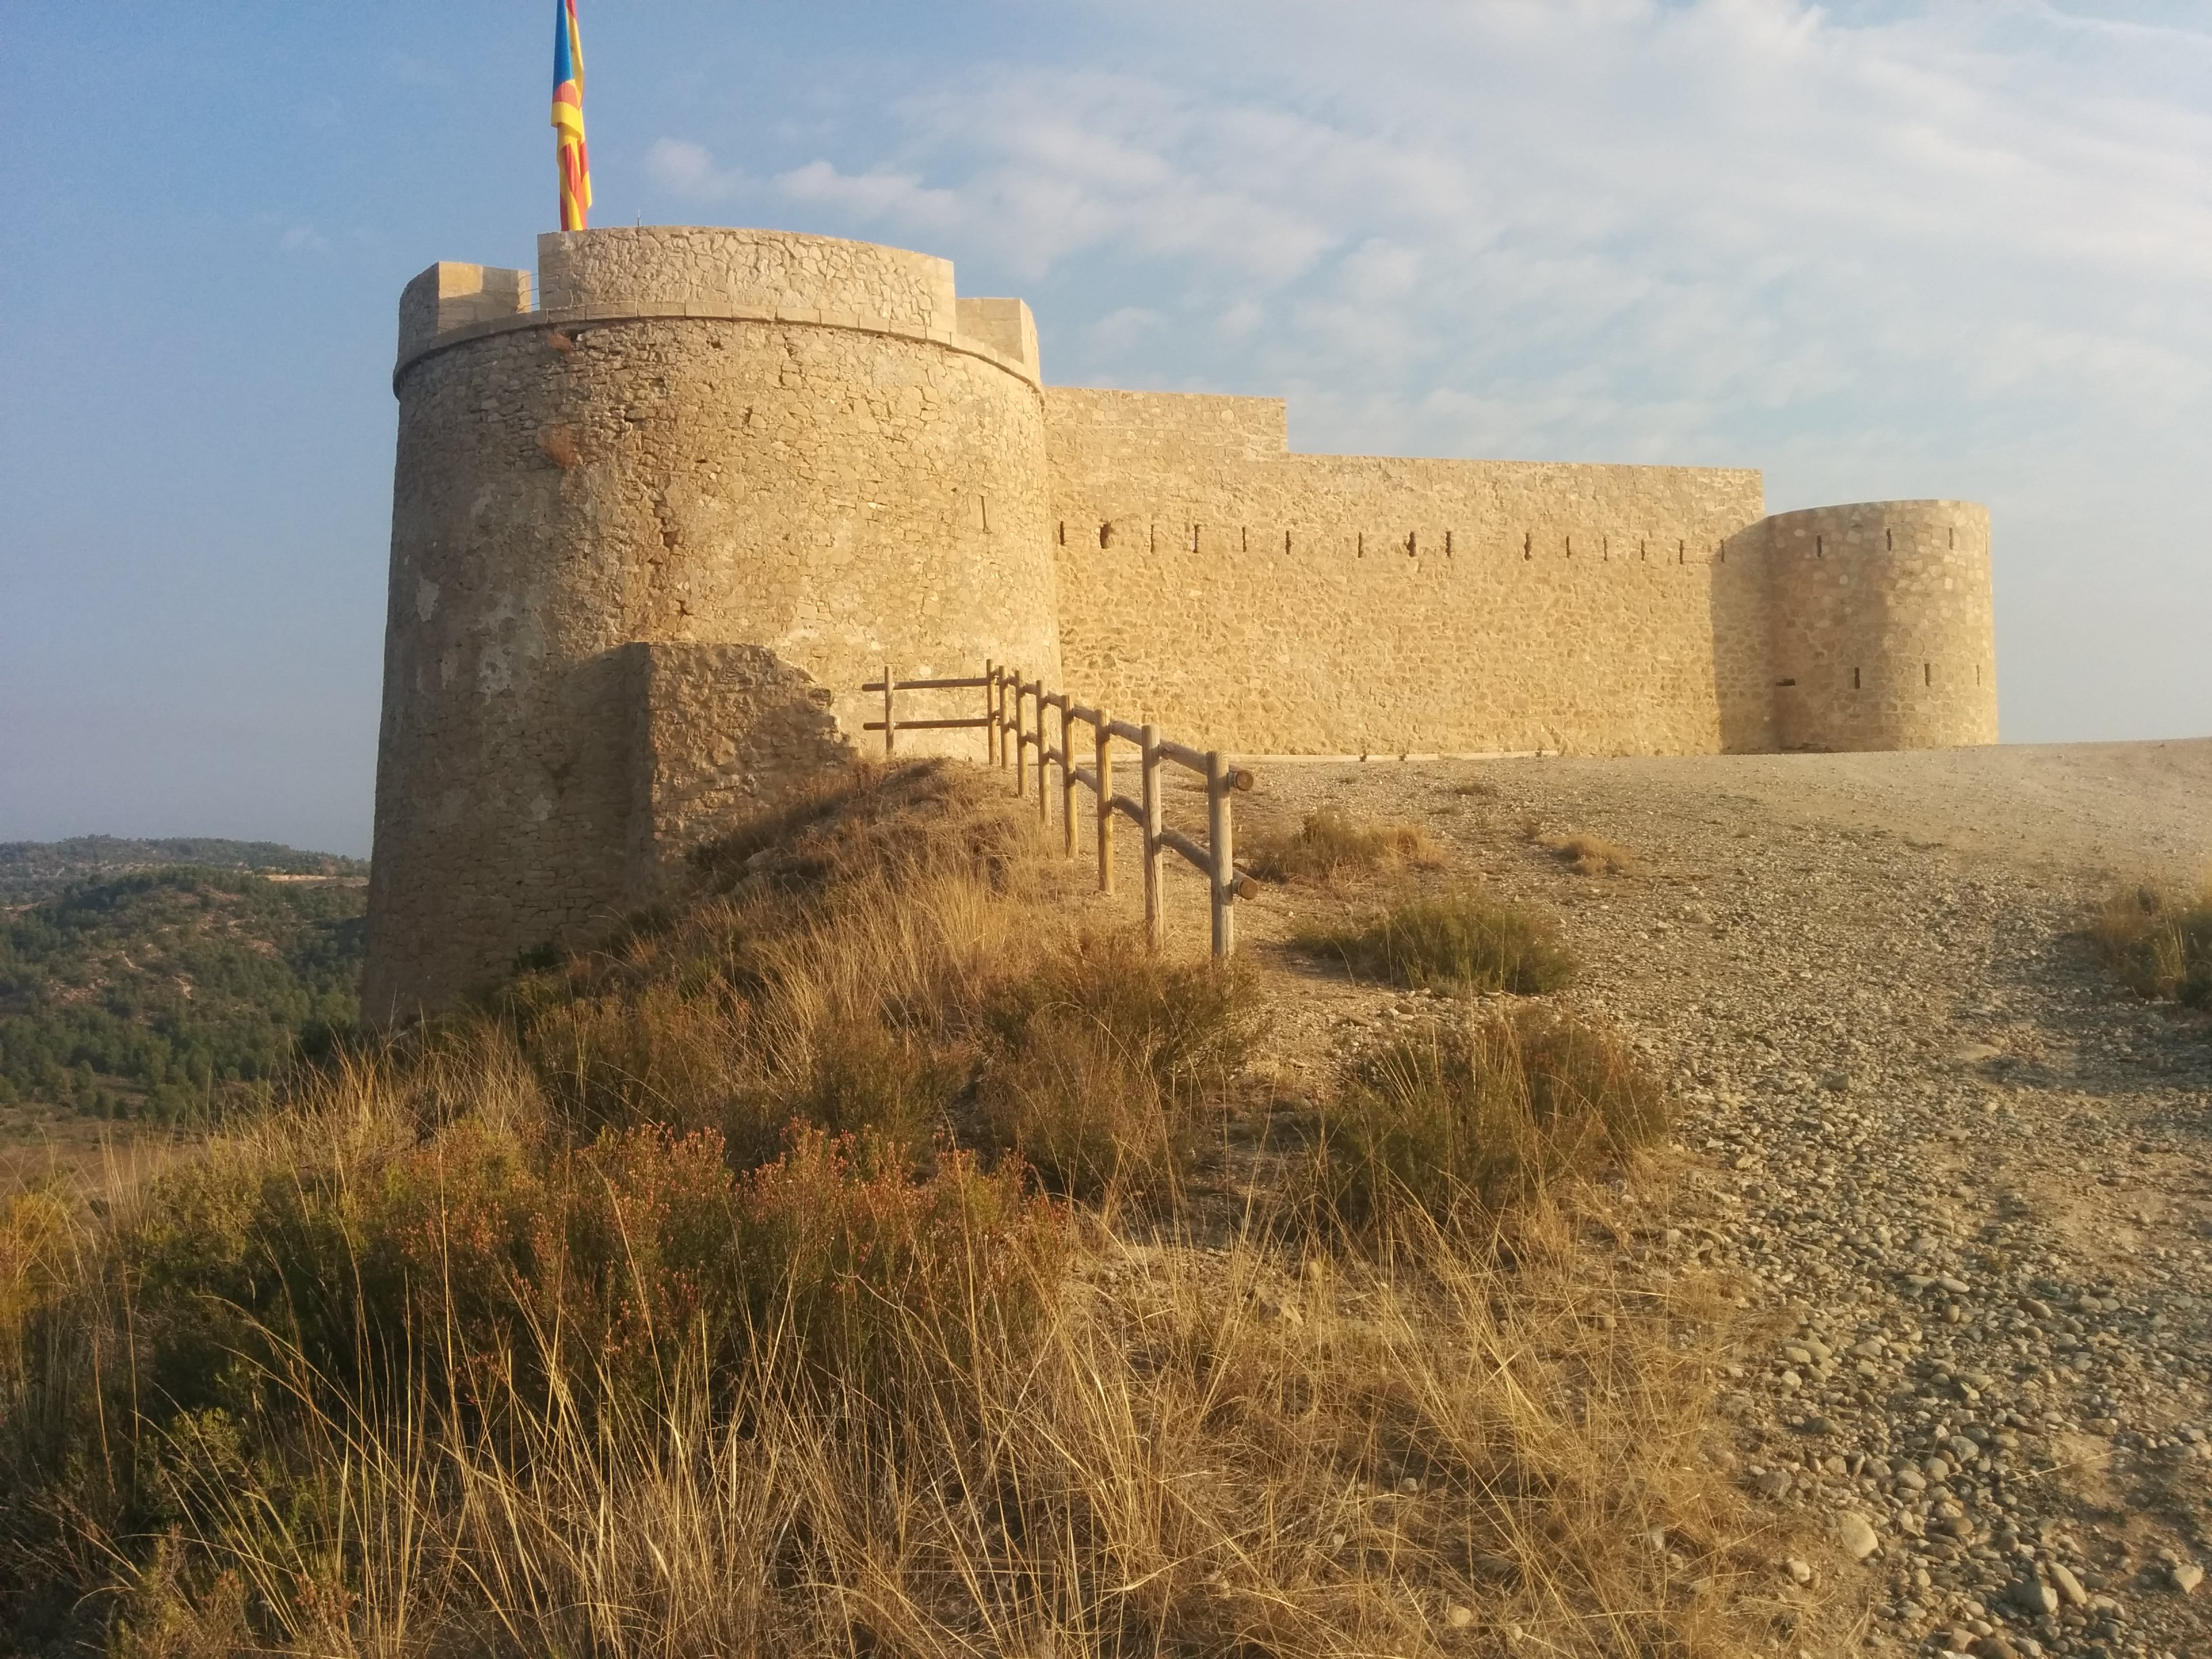 fileflix castell or flix castle or fort in catalonia 29 sept 2015 4